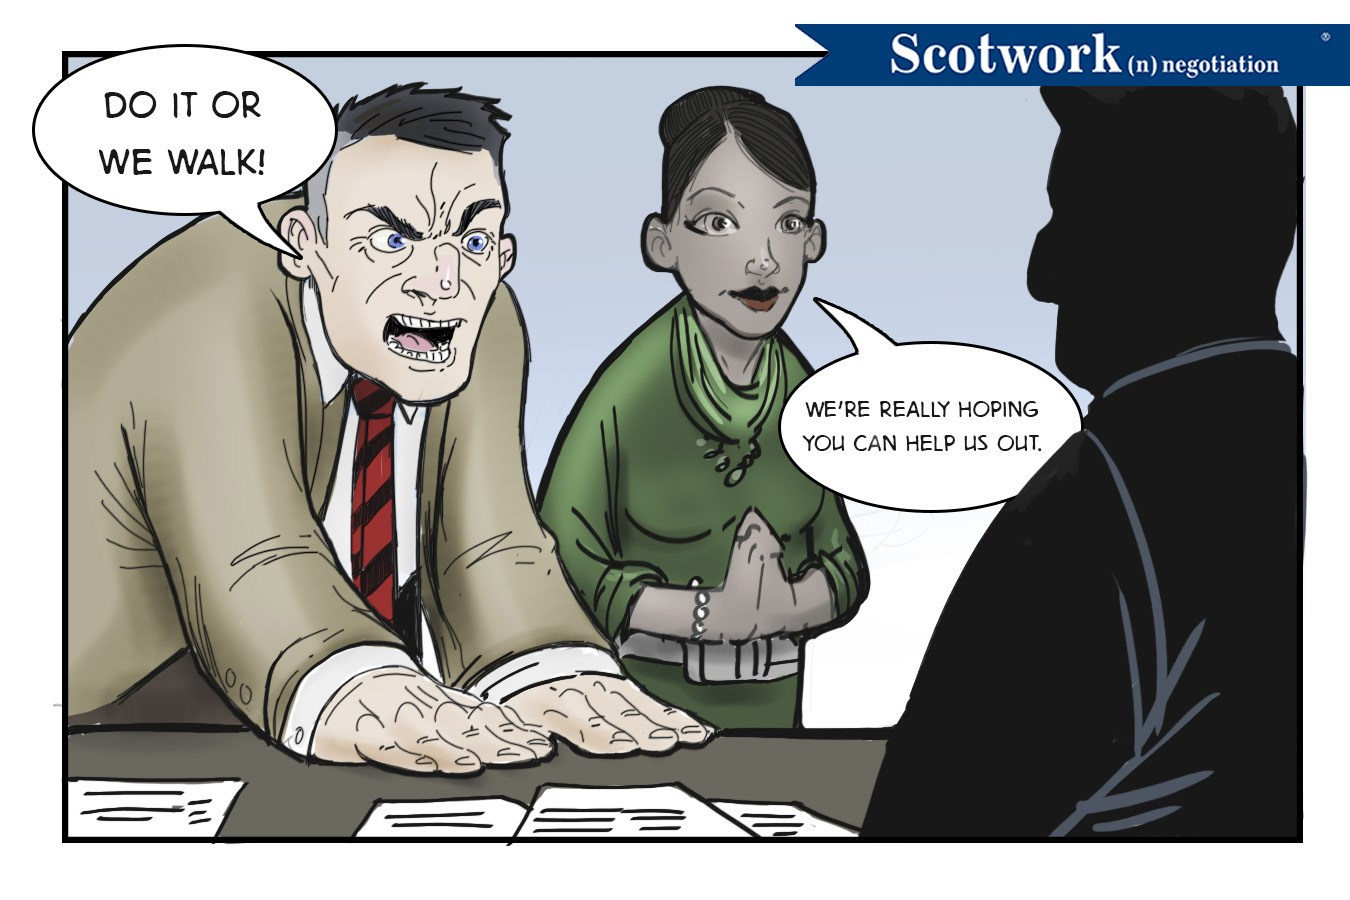 Scotwork_Comic_2018_04_23 Good Cop Bad Cop.jpg